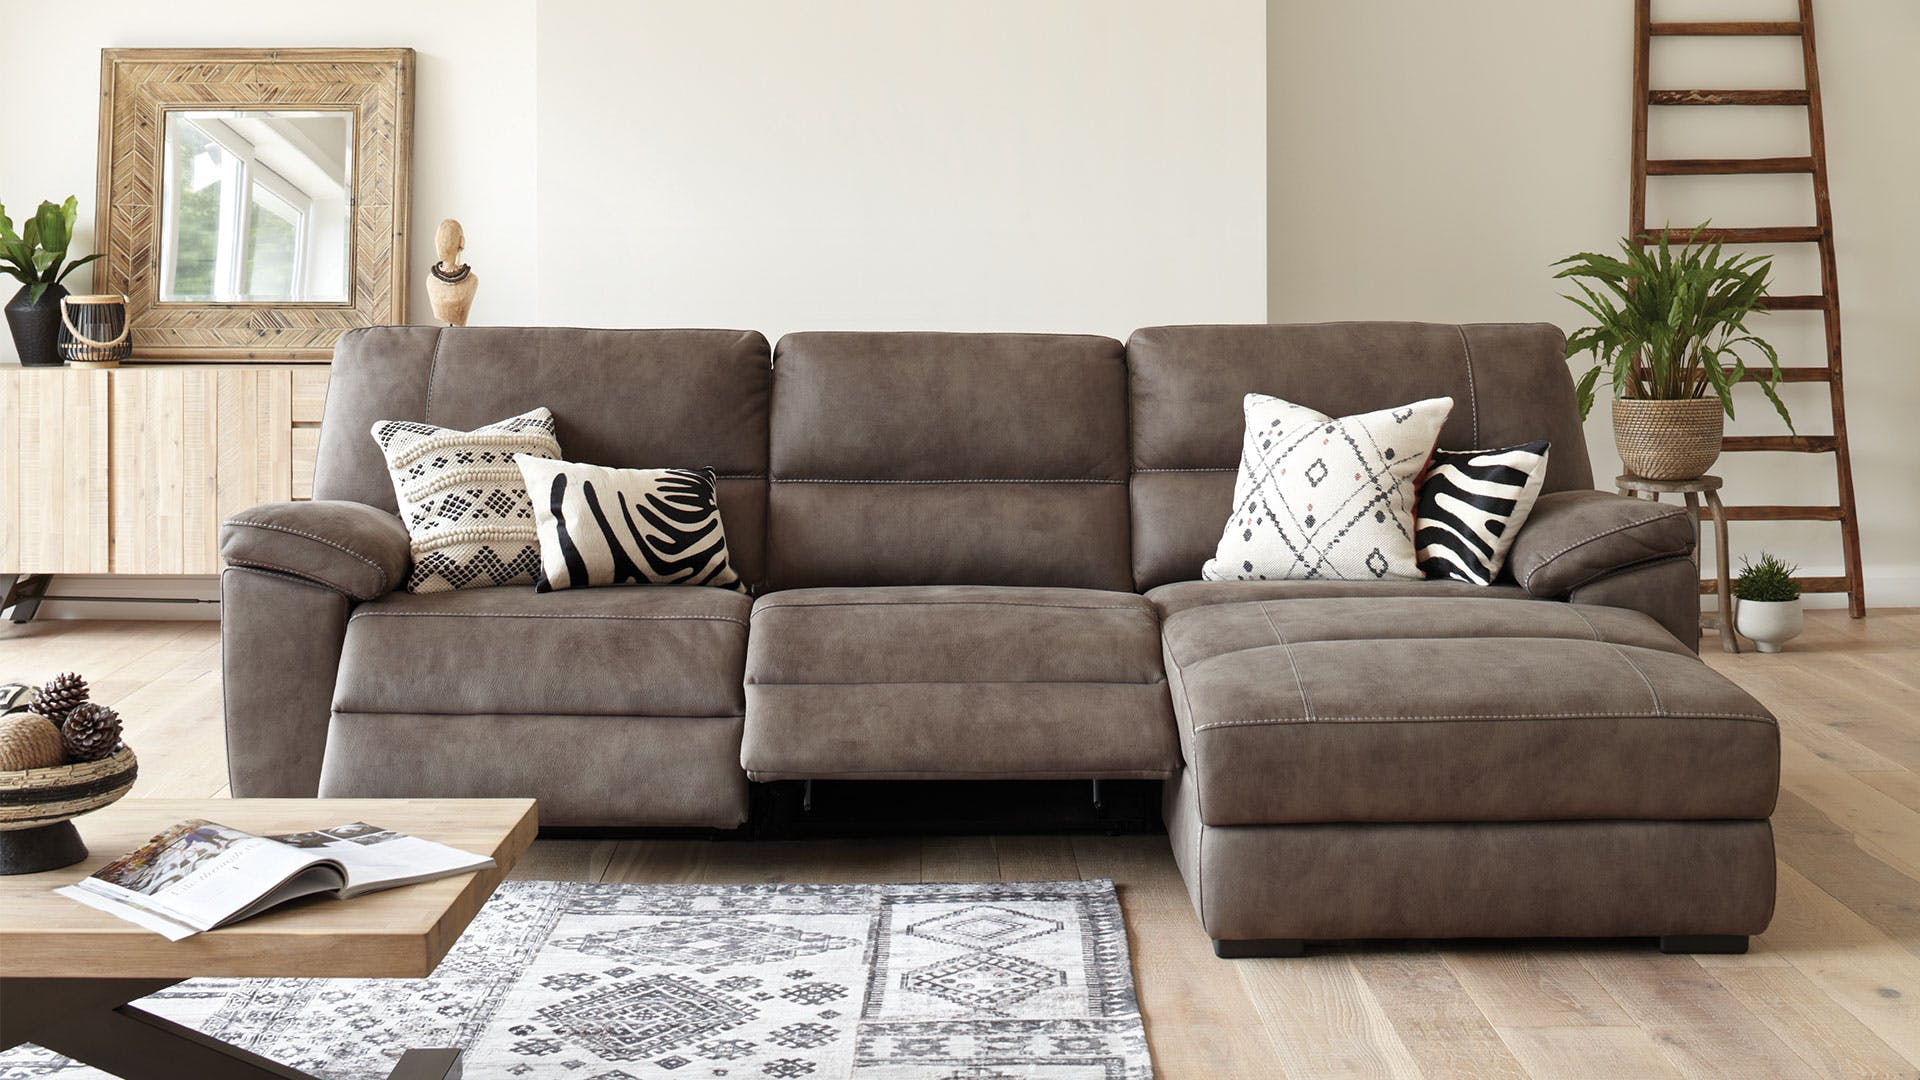 Reclining Sofa Designs With Cup Holders